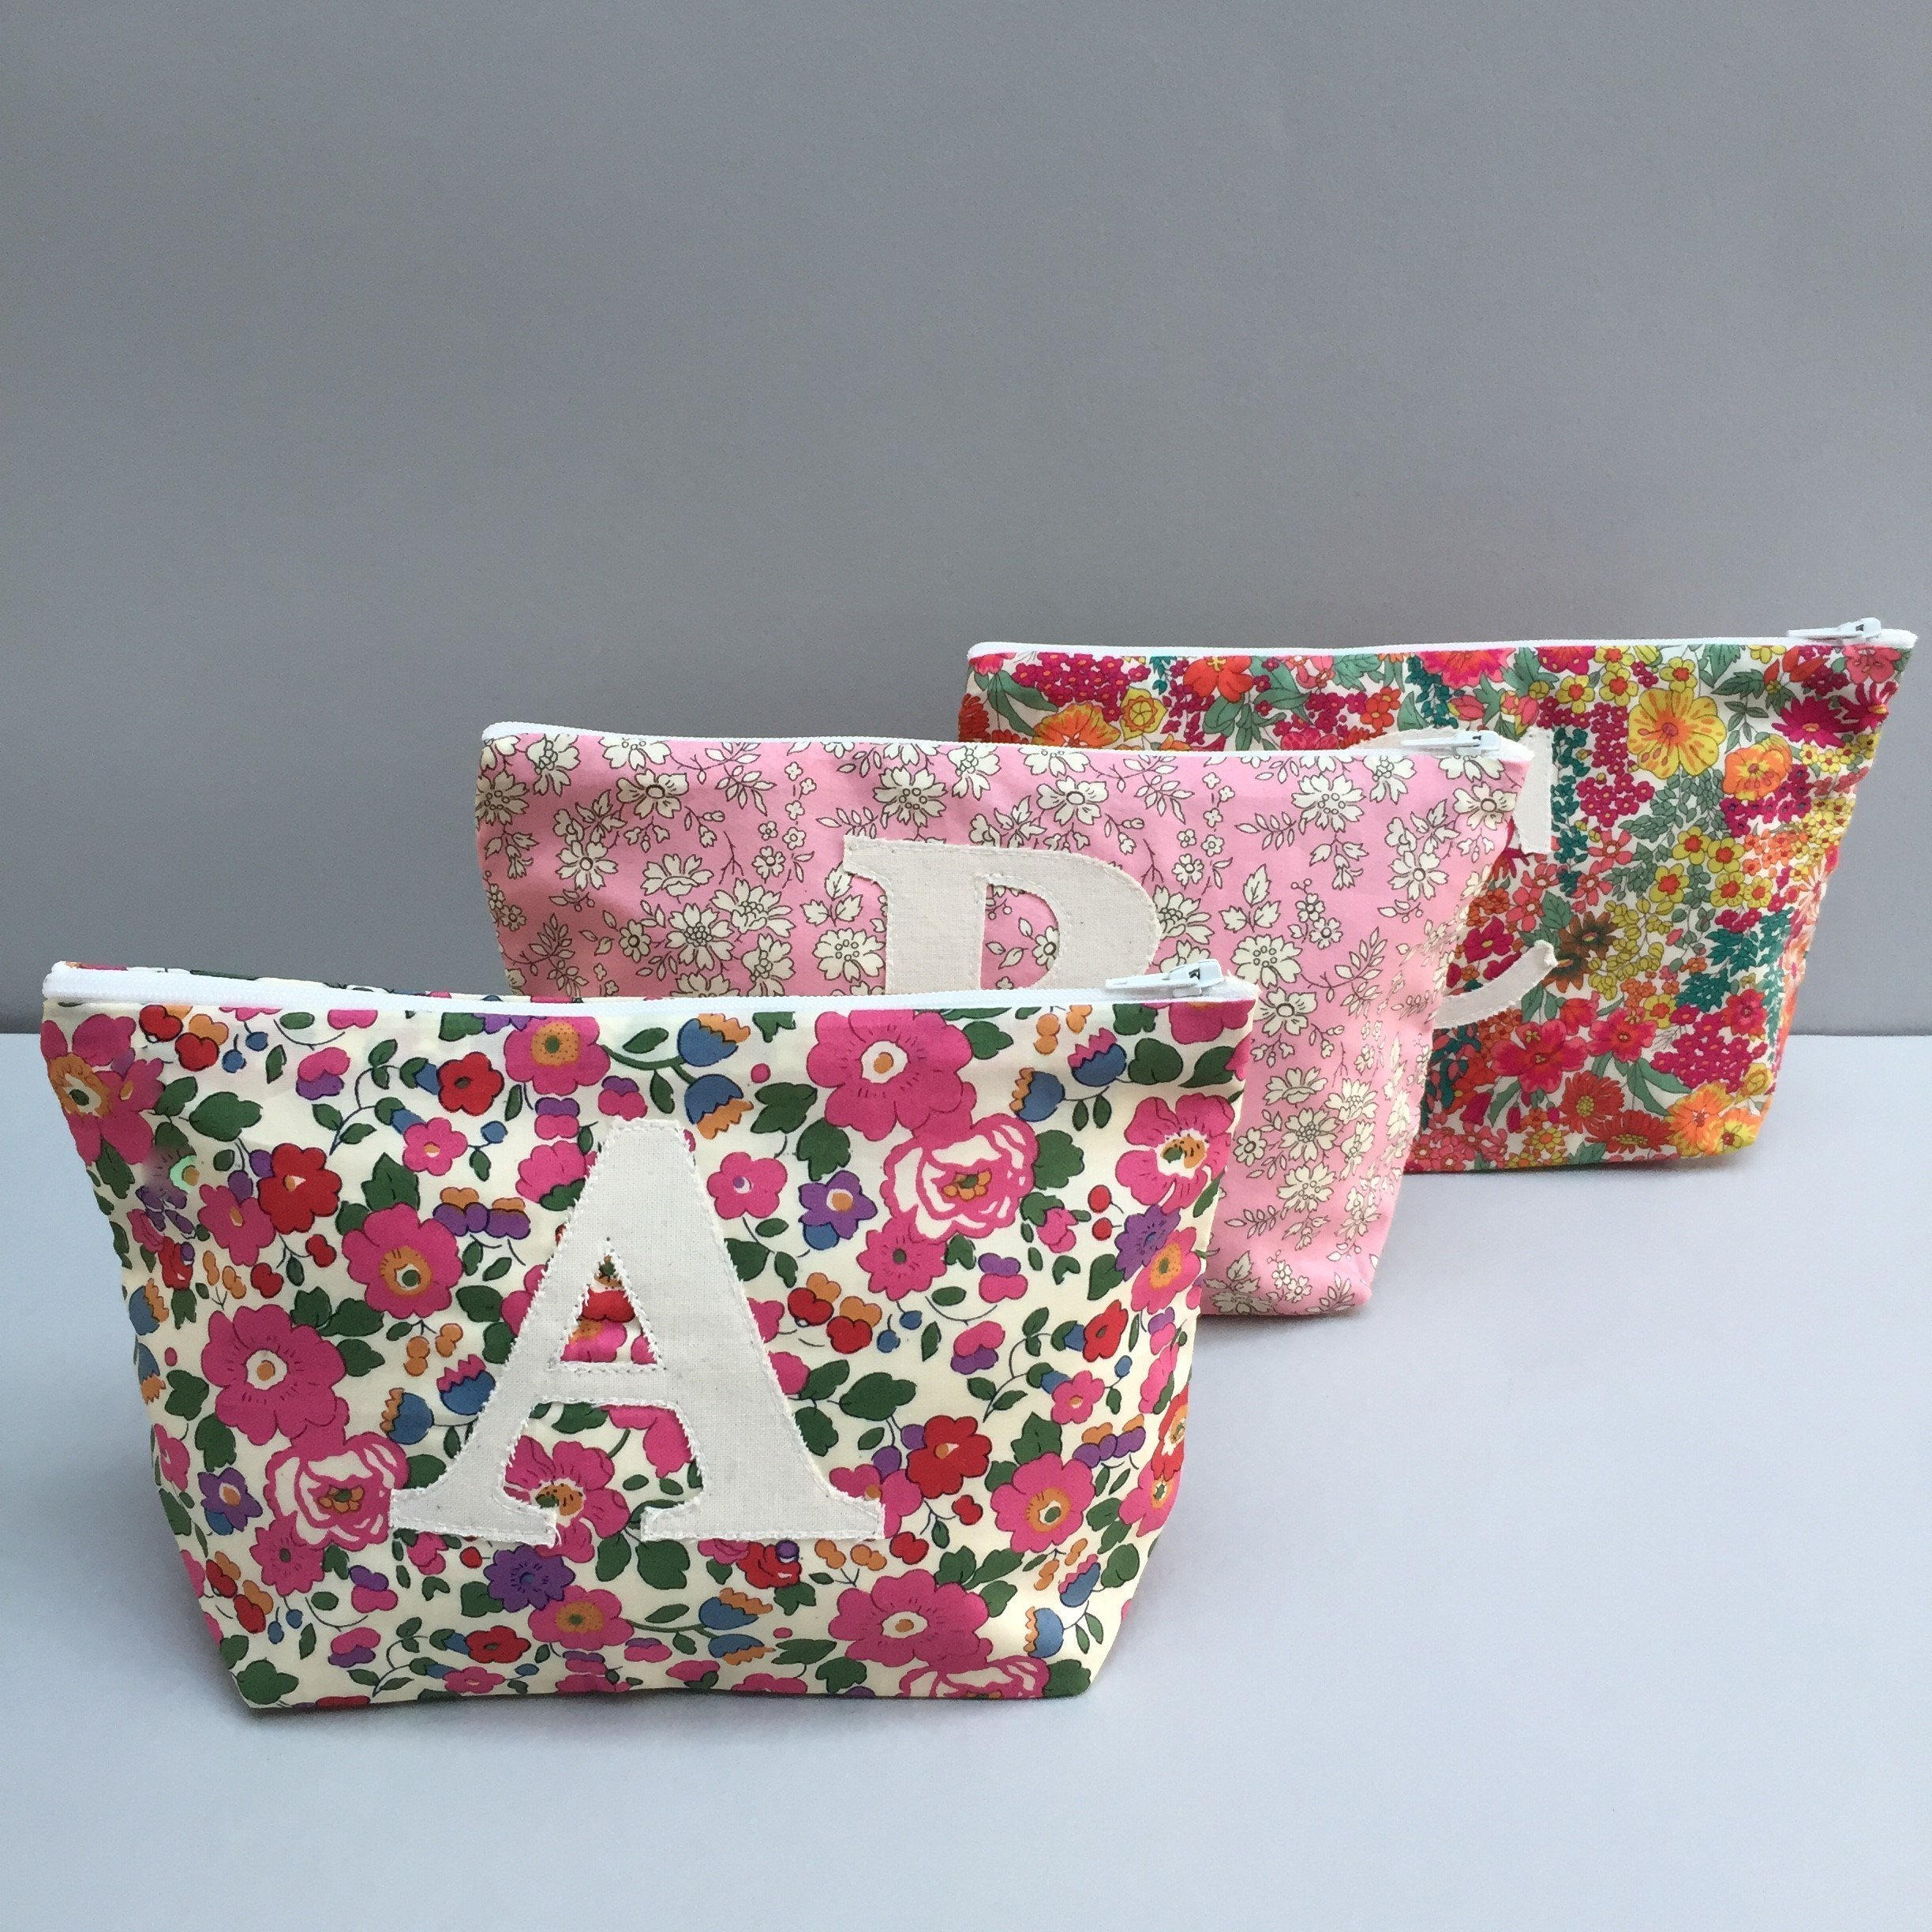 Liberty Print Personalized Make Up Bag Cosmetic Bag Monogram Zip Pouch by Gemima London